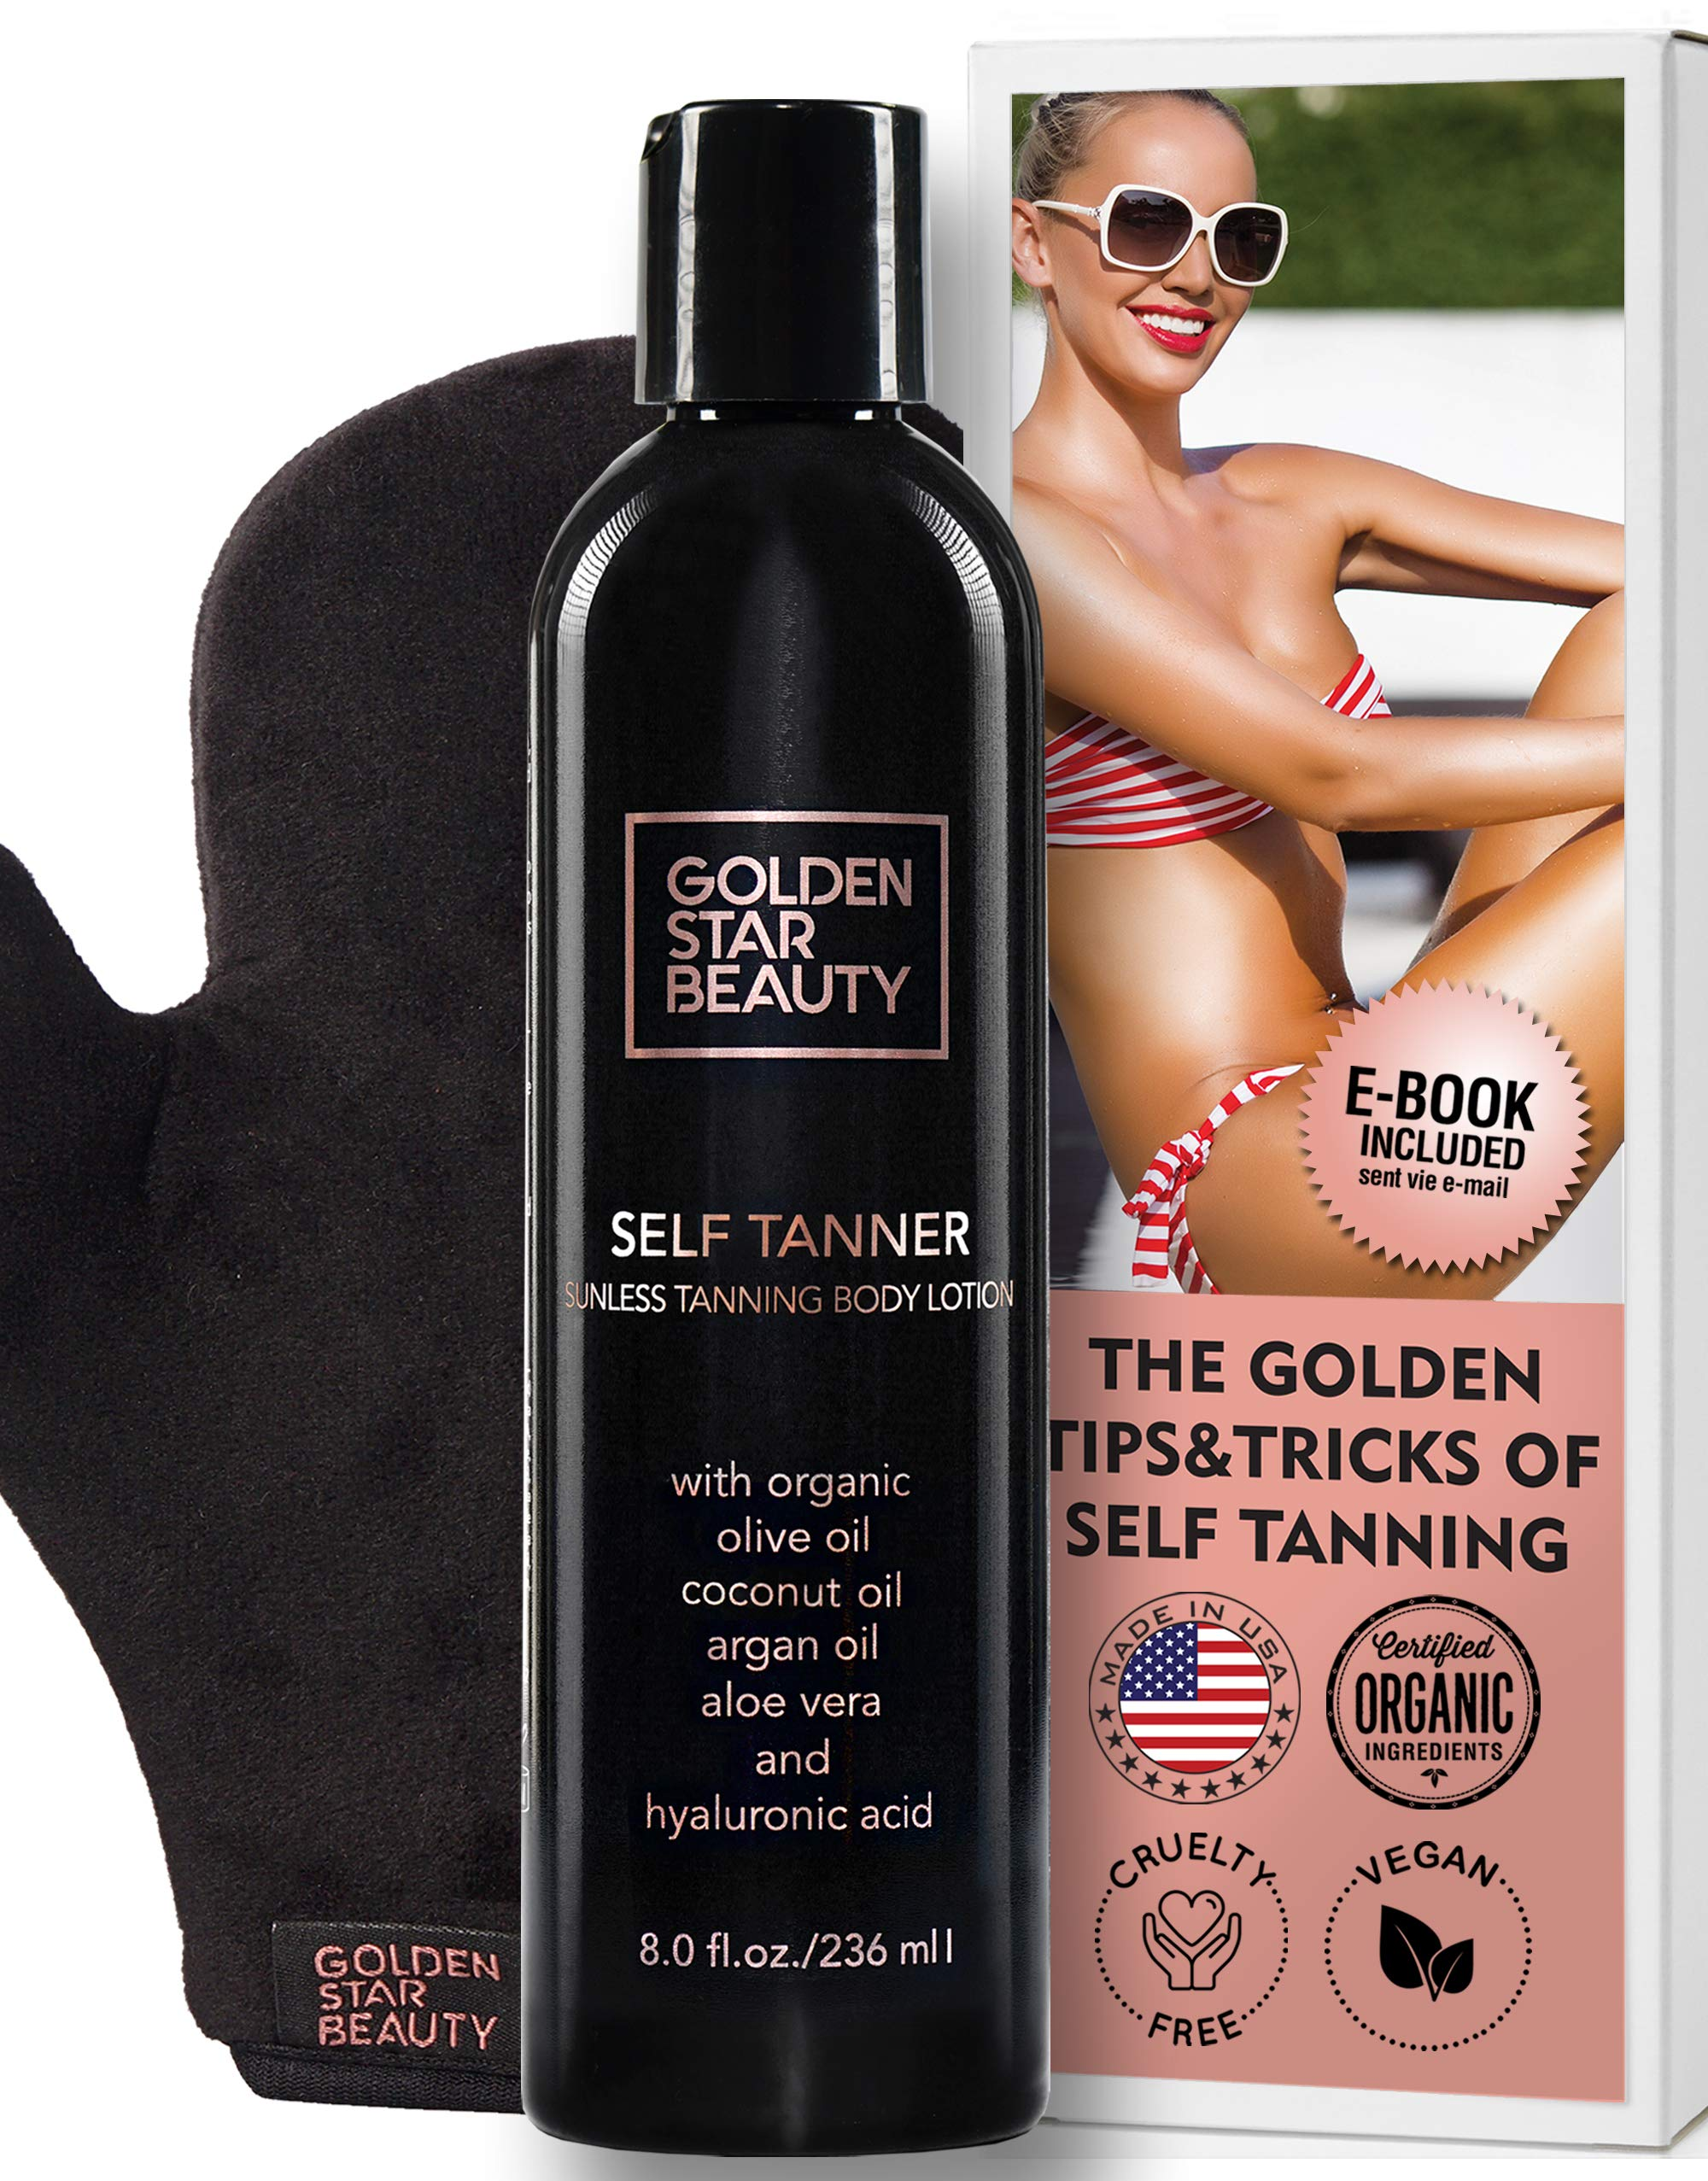 Self Tanner with Tanning Mitt - Sunless Tanning Lotion w/Hyaluronic Acid & Organic Oils Gradual Body Bronzer for Light or Medium Tan 8.0 fl.oz ... by GOLDEN STAR BEAUTY